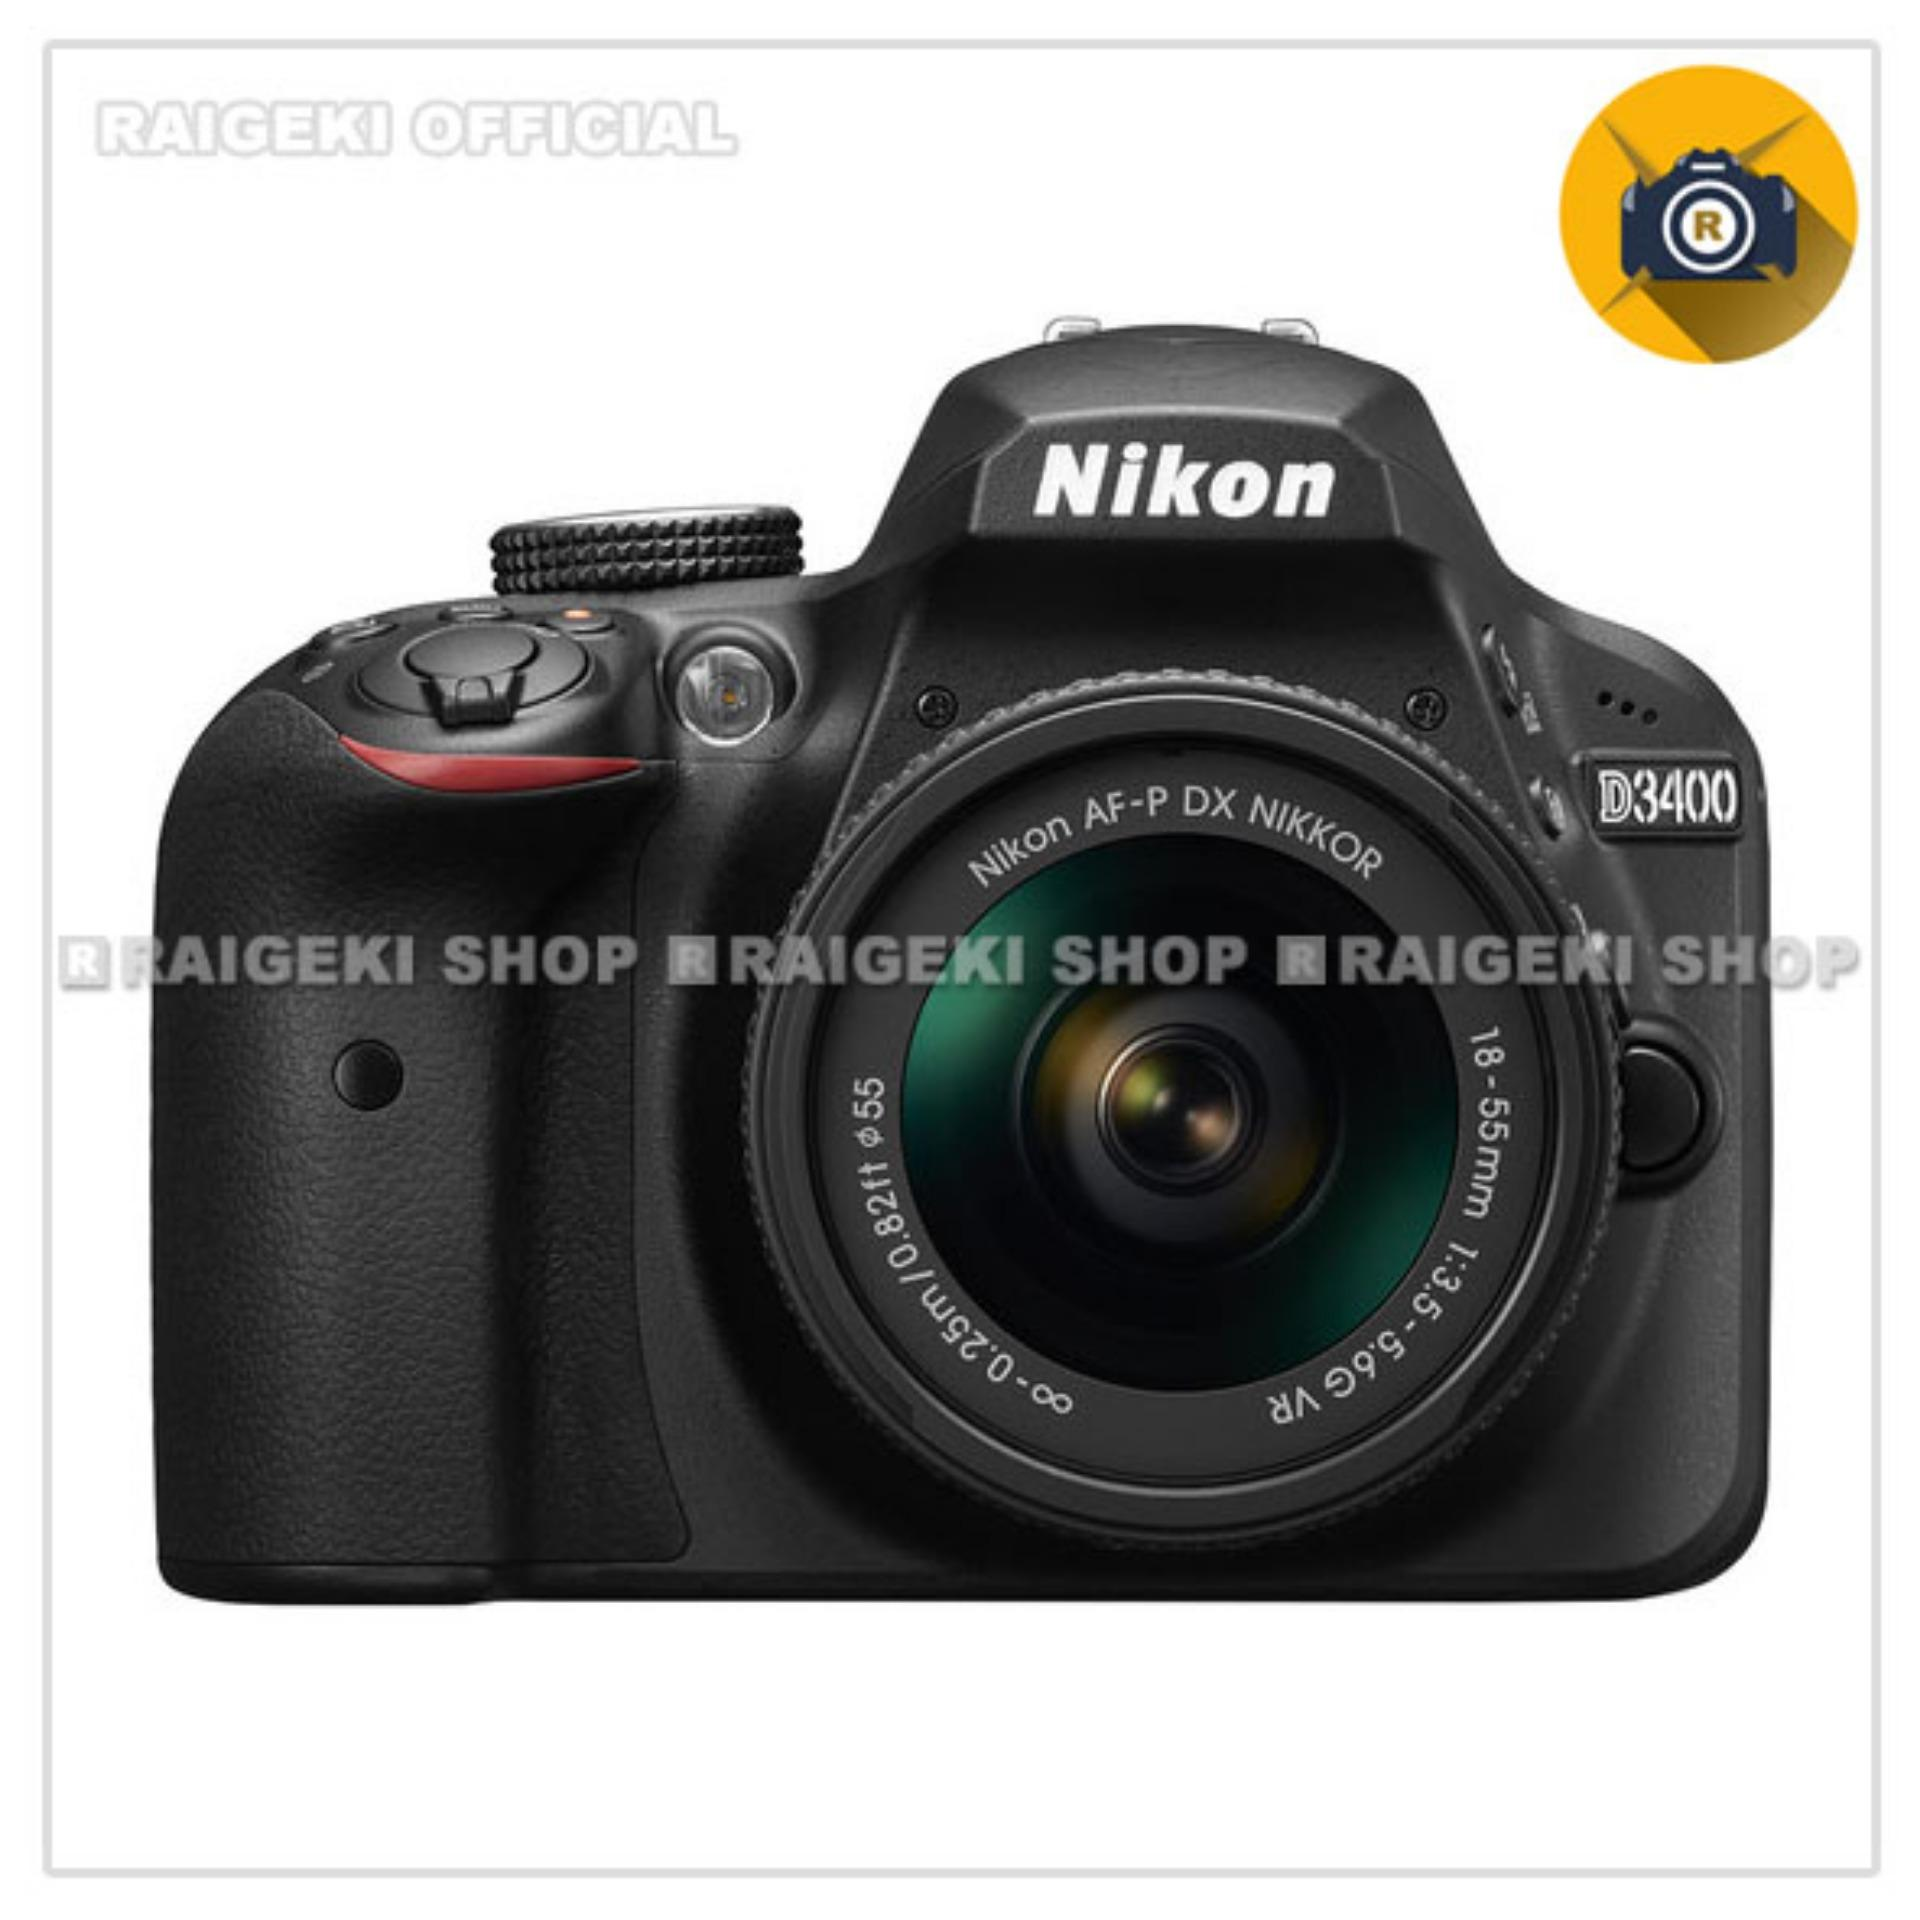 List Harga Kamera Nikon D3400 Oktober 2018 Lengkap Rubber Karet Viewfinder View Finder Eye Cup Eyecup Piece Eyepiece Untuk For Camera D3300 D3200 D3100 D3000 D5500 D5300 D80 D90 Lensa Kit 18 55mm Vr Dslr